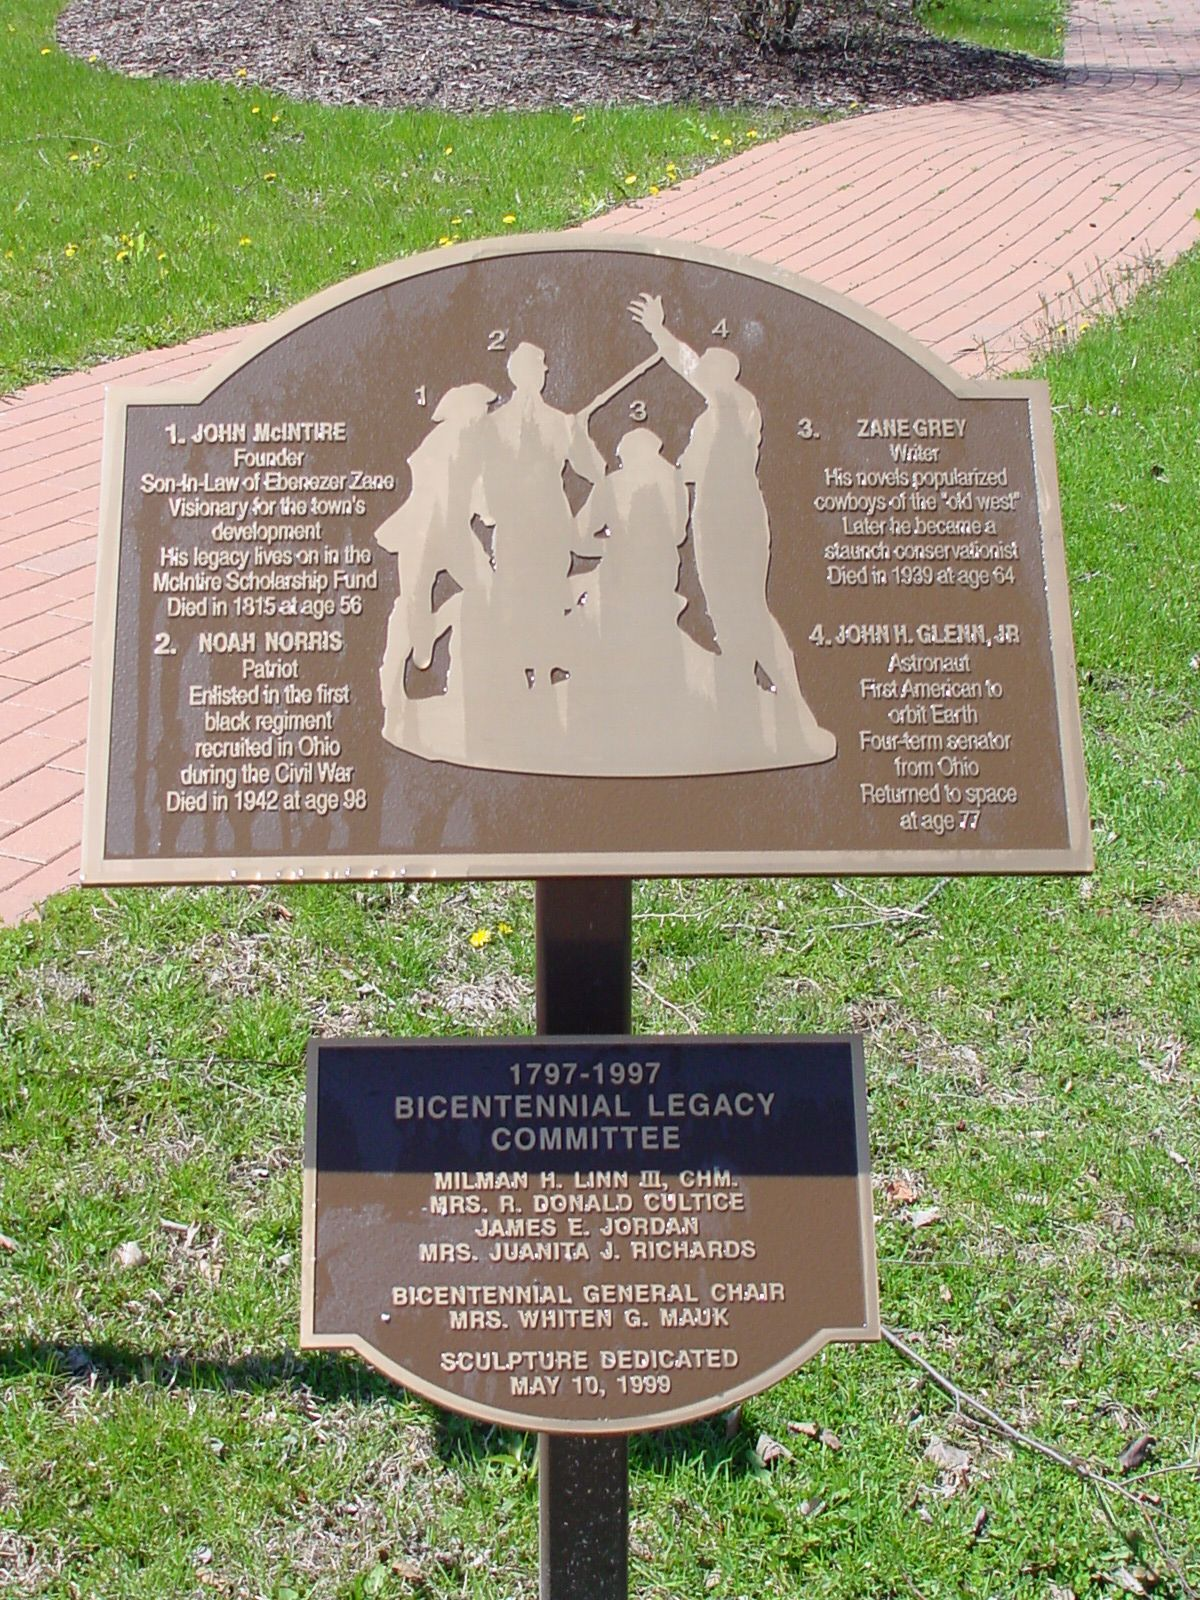 The Bicentennial Legacy Monument Marker